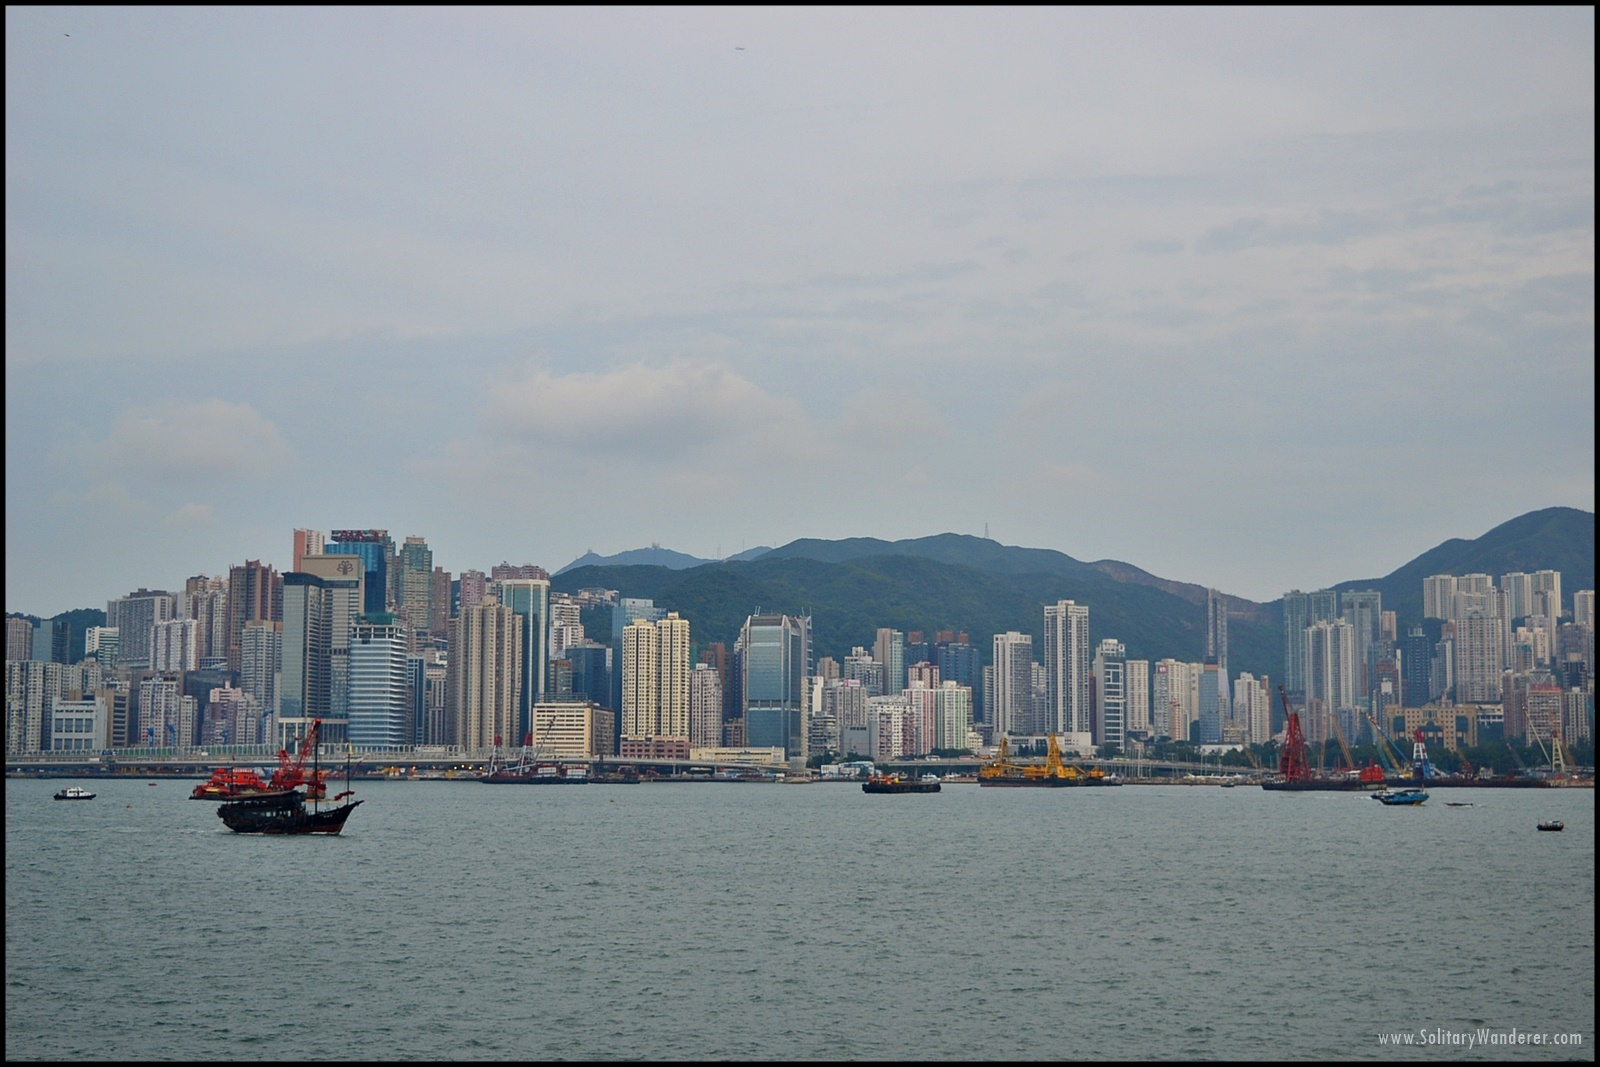 The iconic Hong Kong skyline